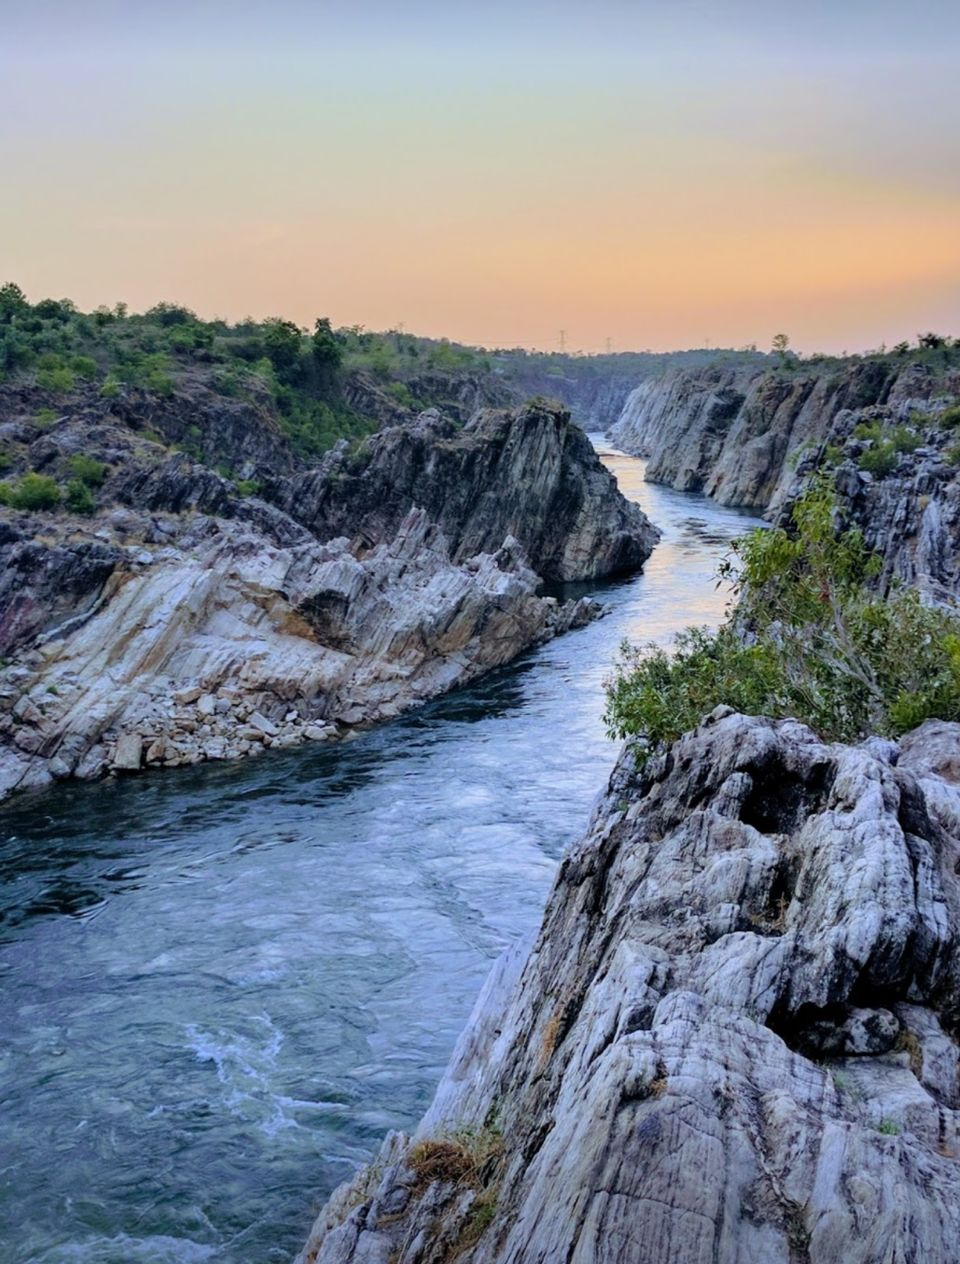 Photos of Bhedaghat - Narmada at its best ! 1/1 by Aanjikya Shukla